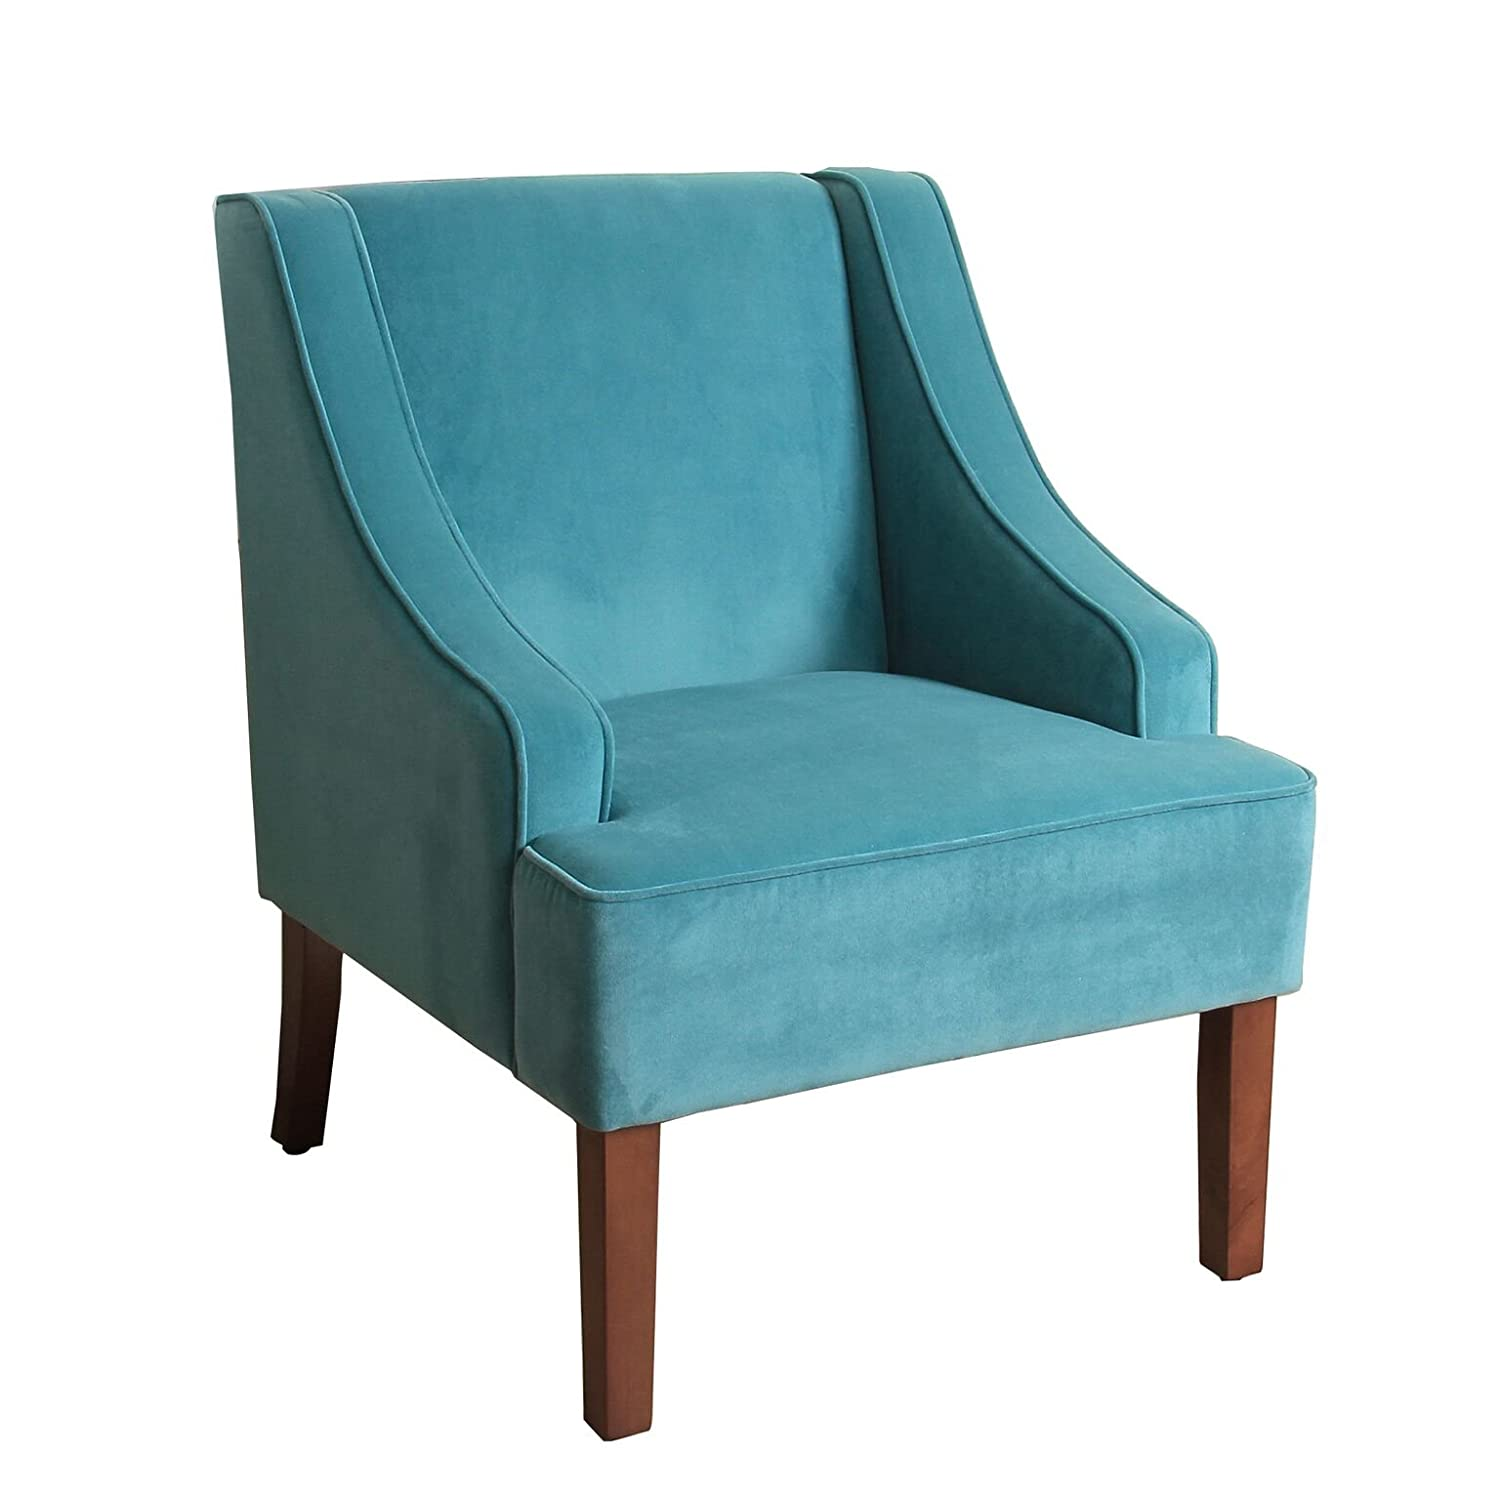 Amazoncom Homepop K6499 B122 Velvet Swoop Arm Accent Chair Teal